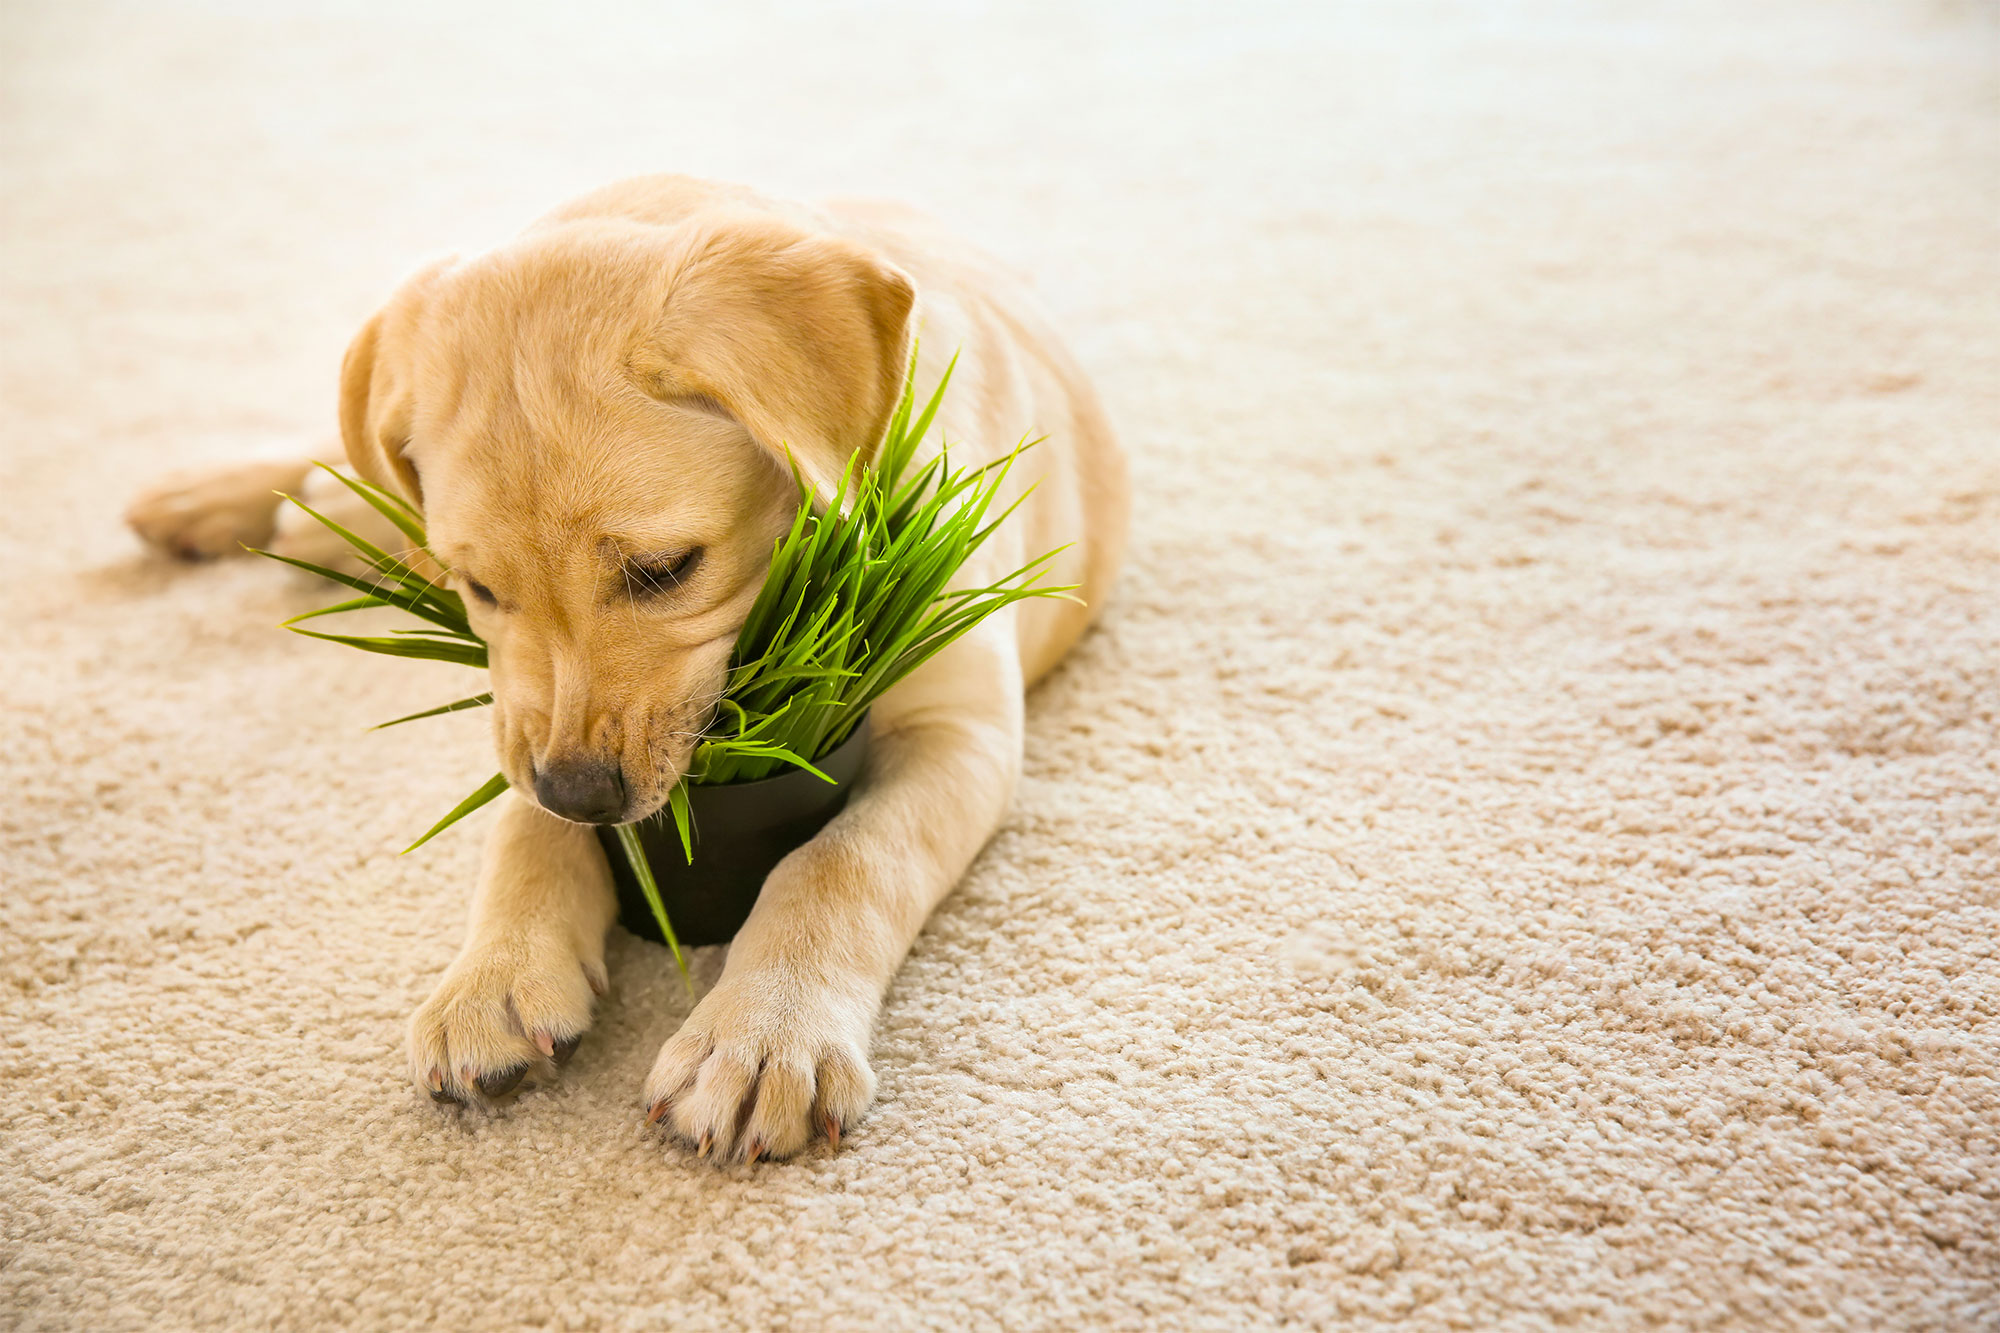 agripet-healthy-greens-cat-dog-pet-grass-02